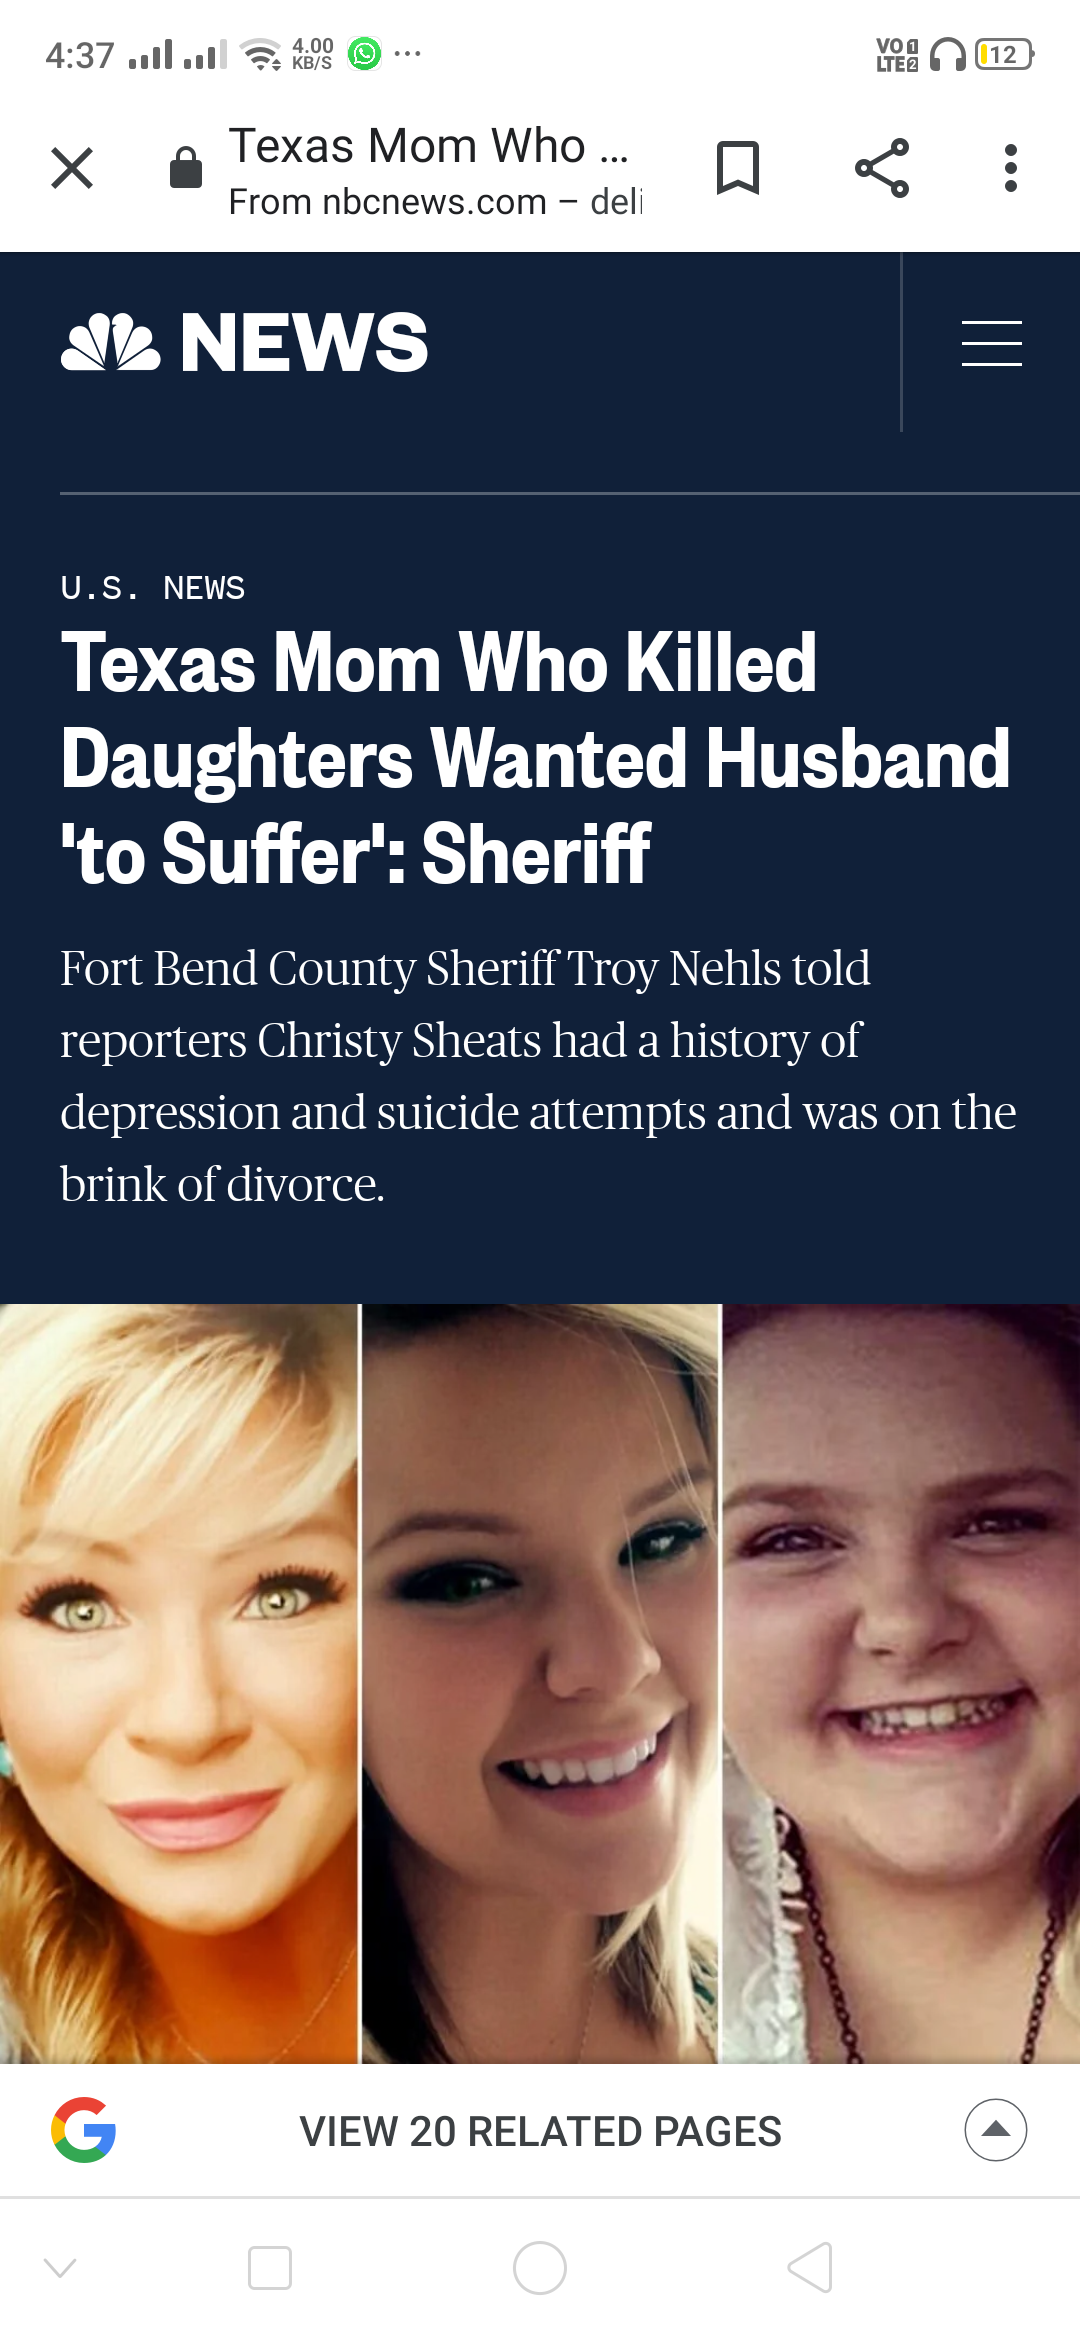 She killed his daughters on his birthday to make him suffer